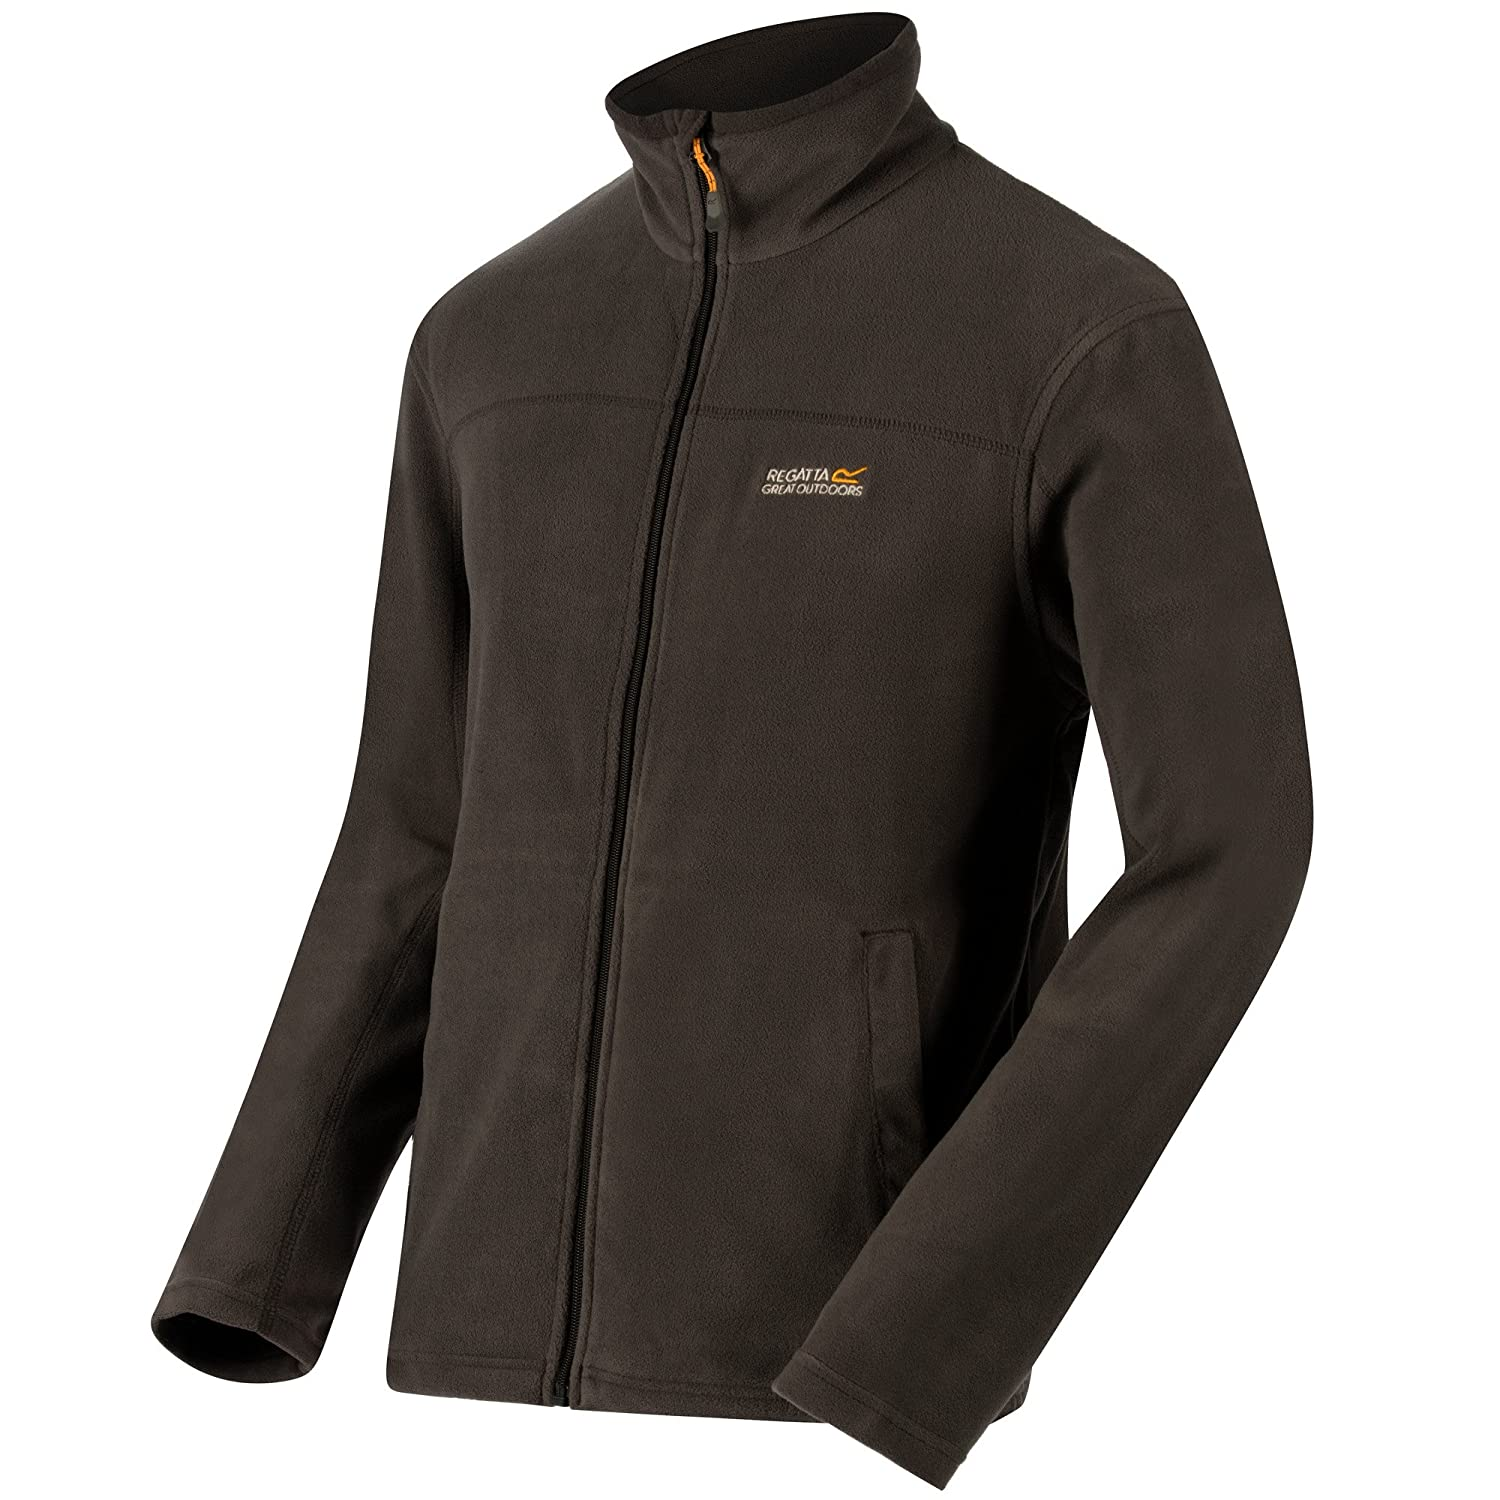 Regatta Great Outdoors - Forro Polar Modelo Adventure Tech Fairview Hombre Caballero